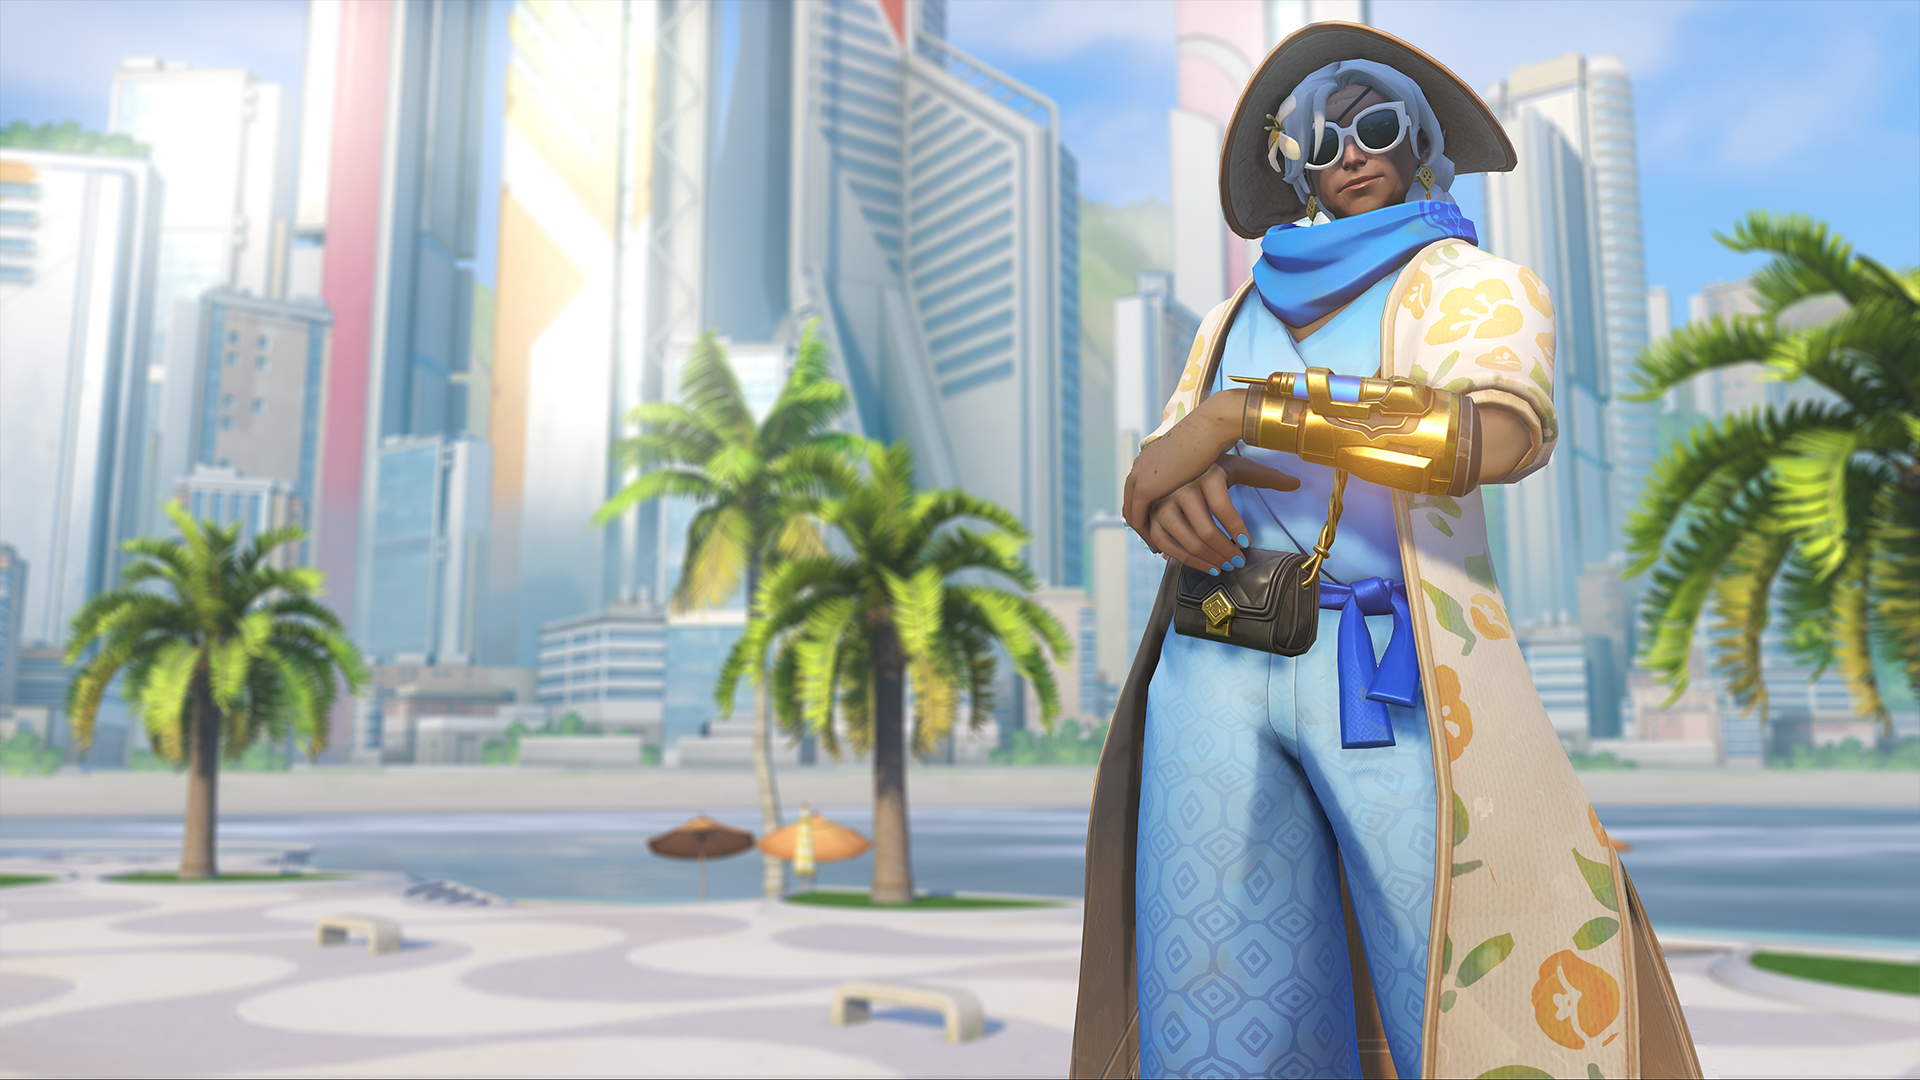 Ana puts her foes to sleep in a mini-movie hidden in the